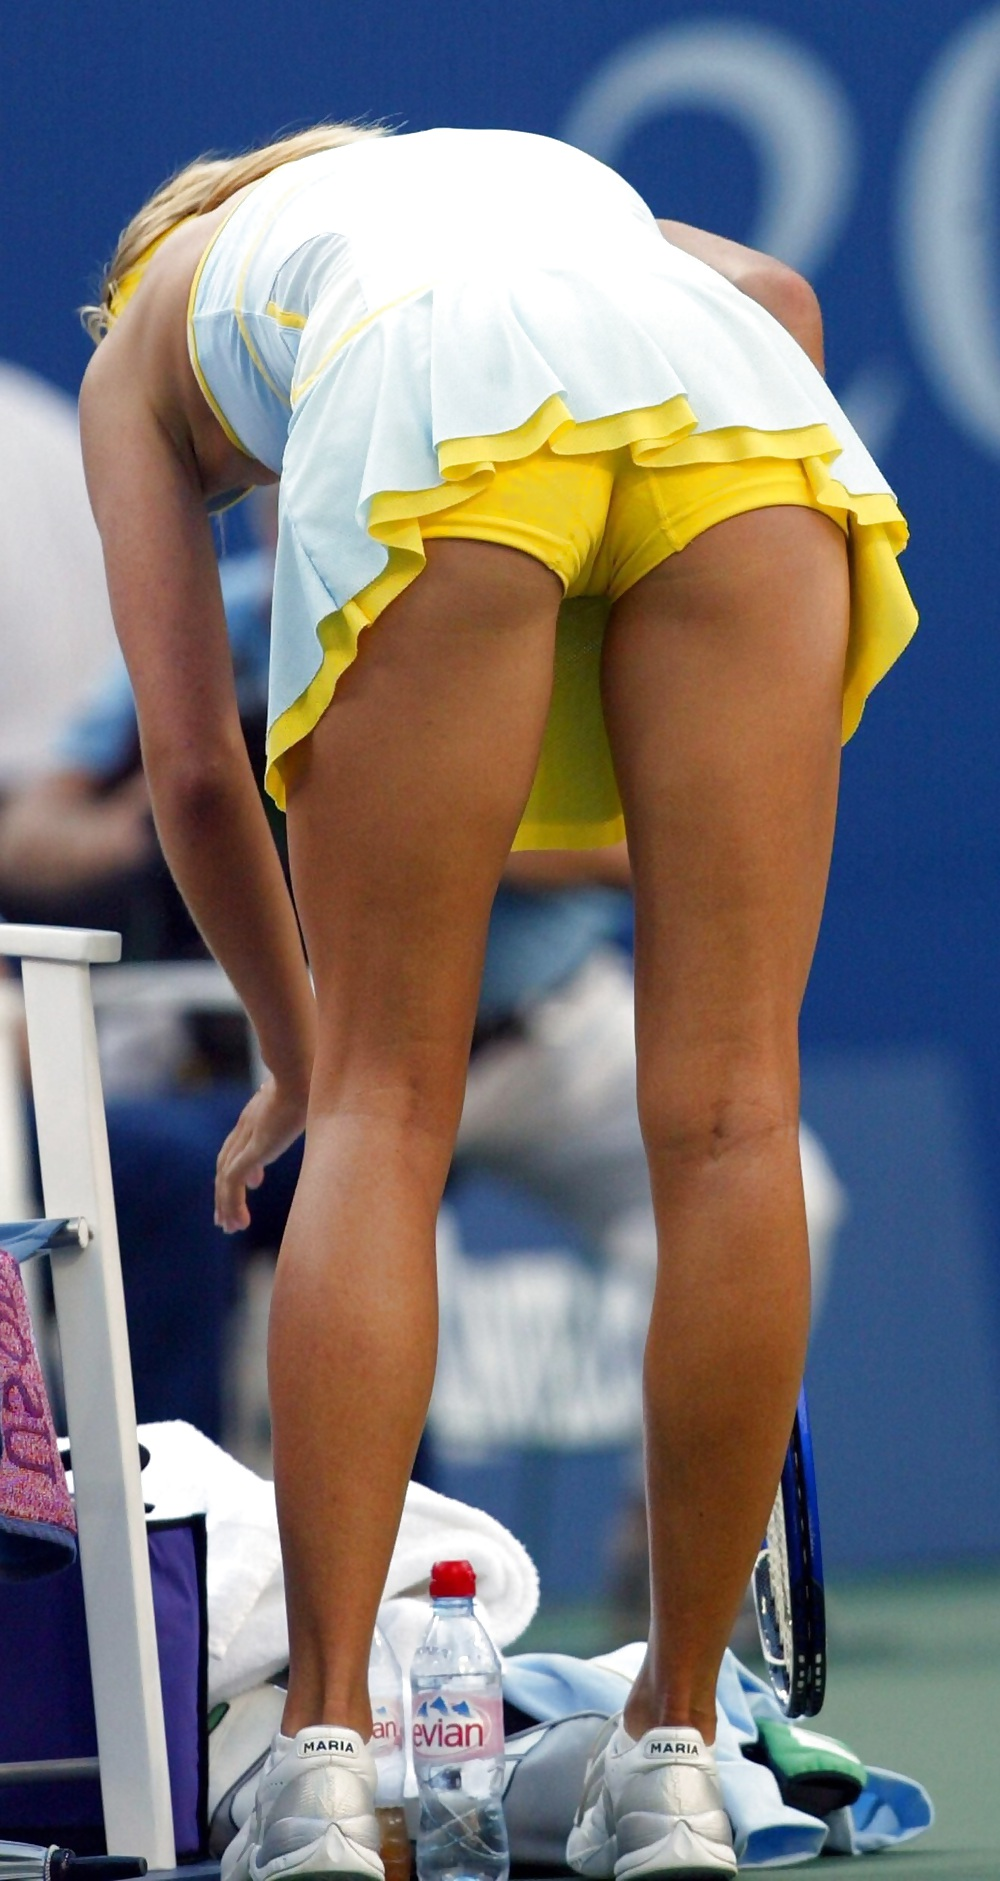 The best upskirt moments in tennis